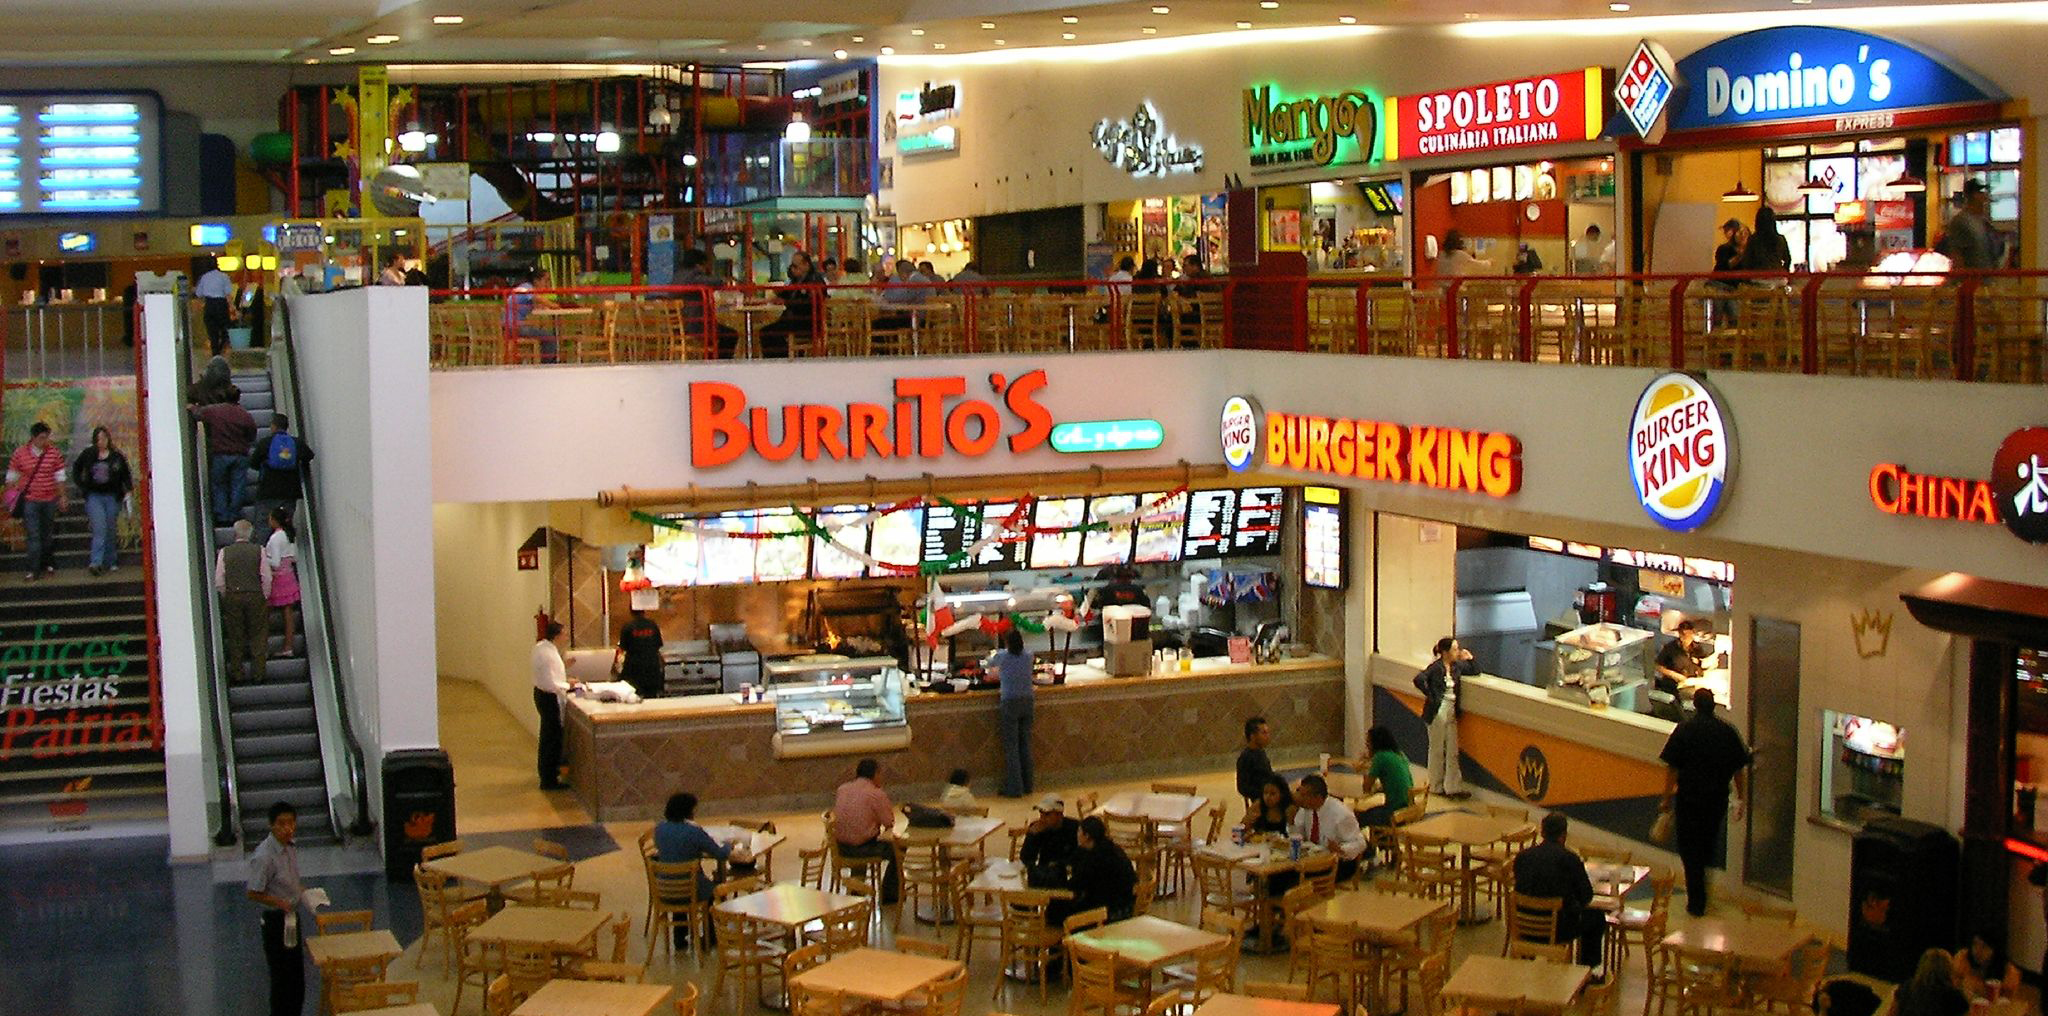 Top 10 Fast Food Restaurant